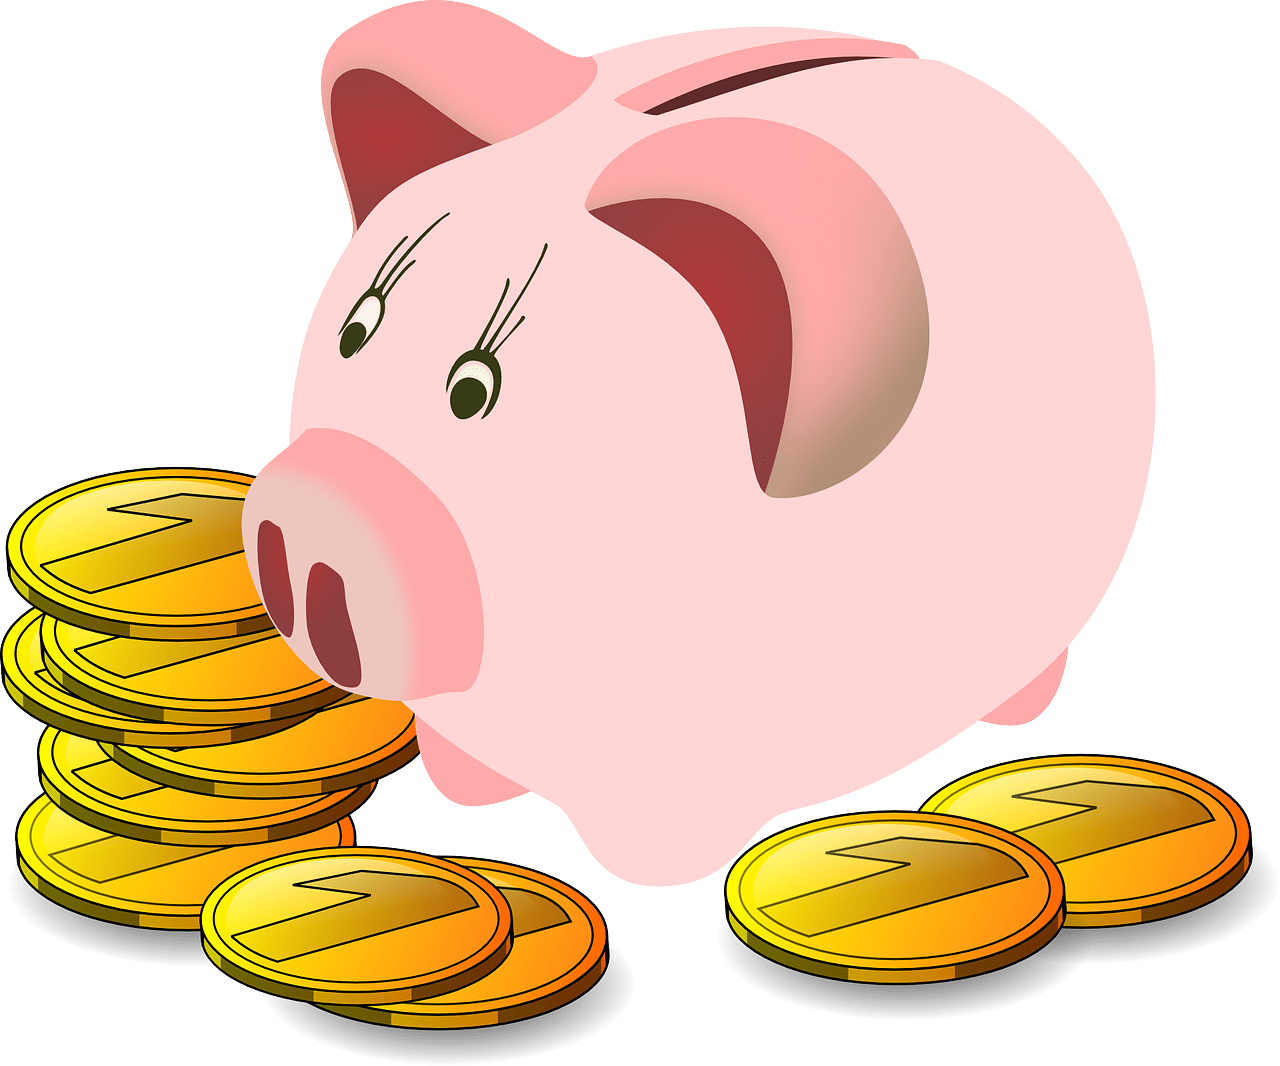 Coins clipart expense. Converting to cash is